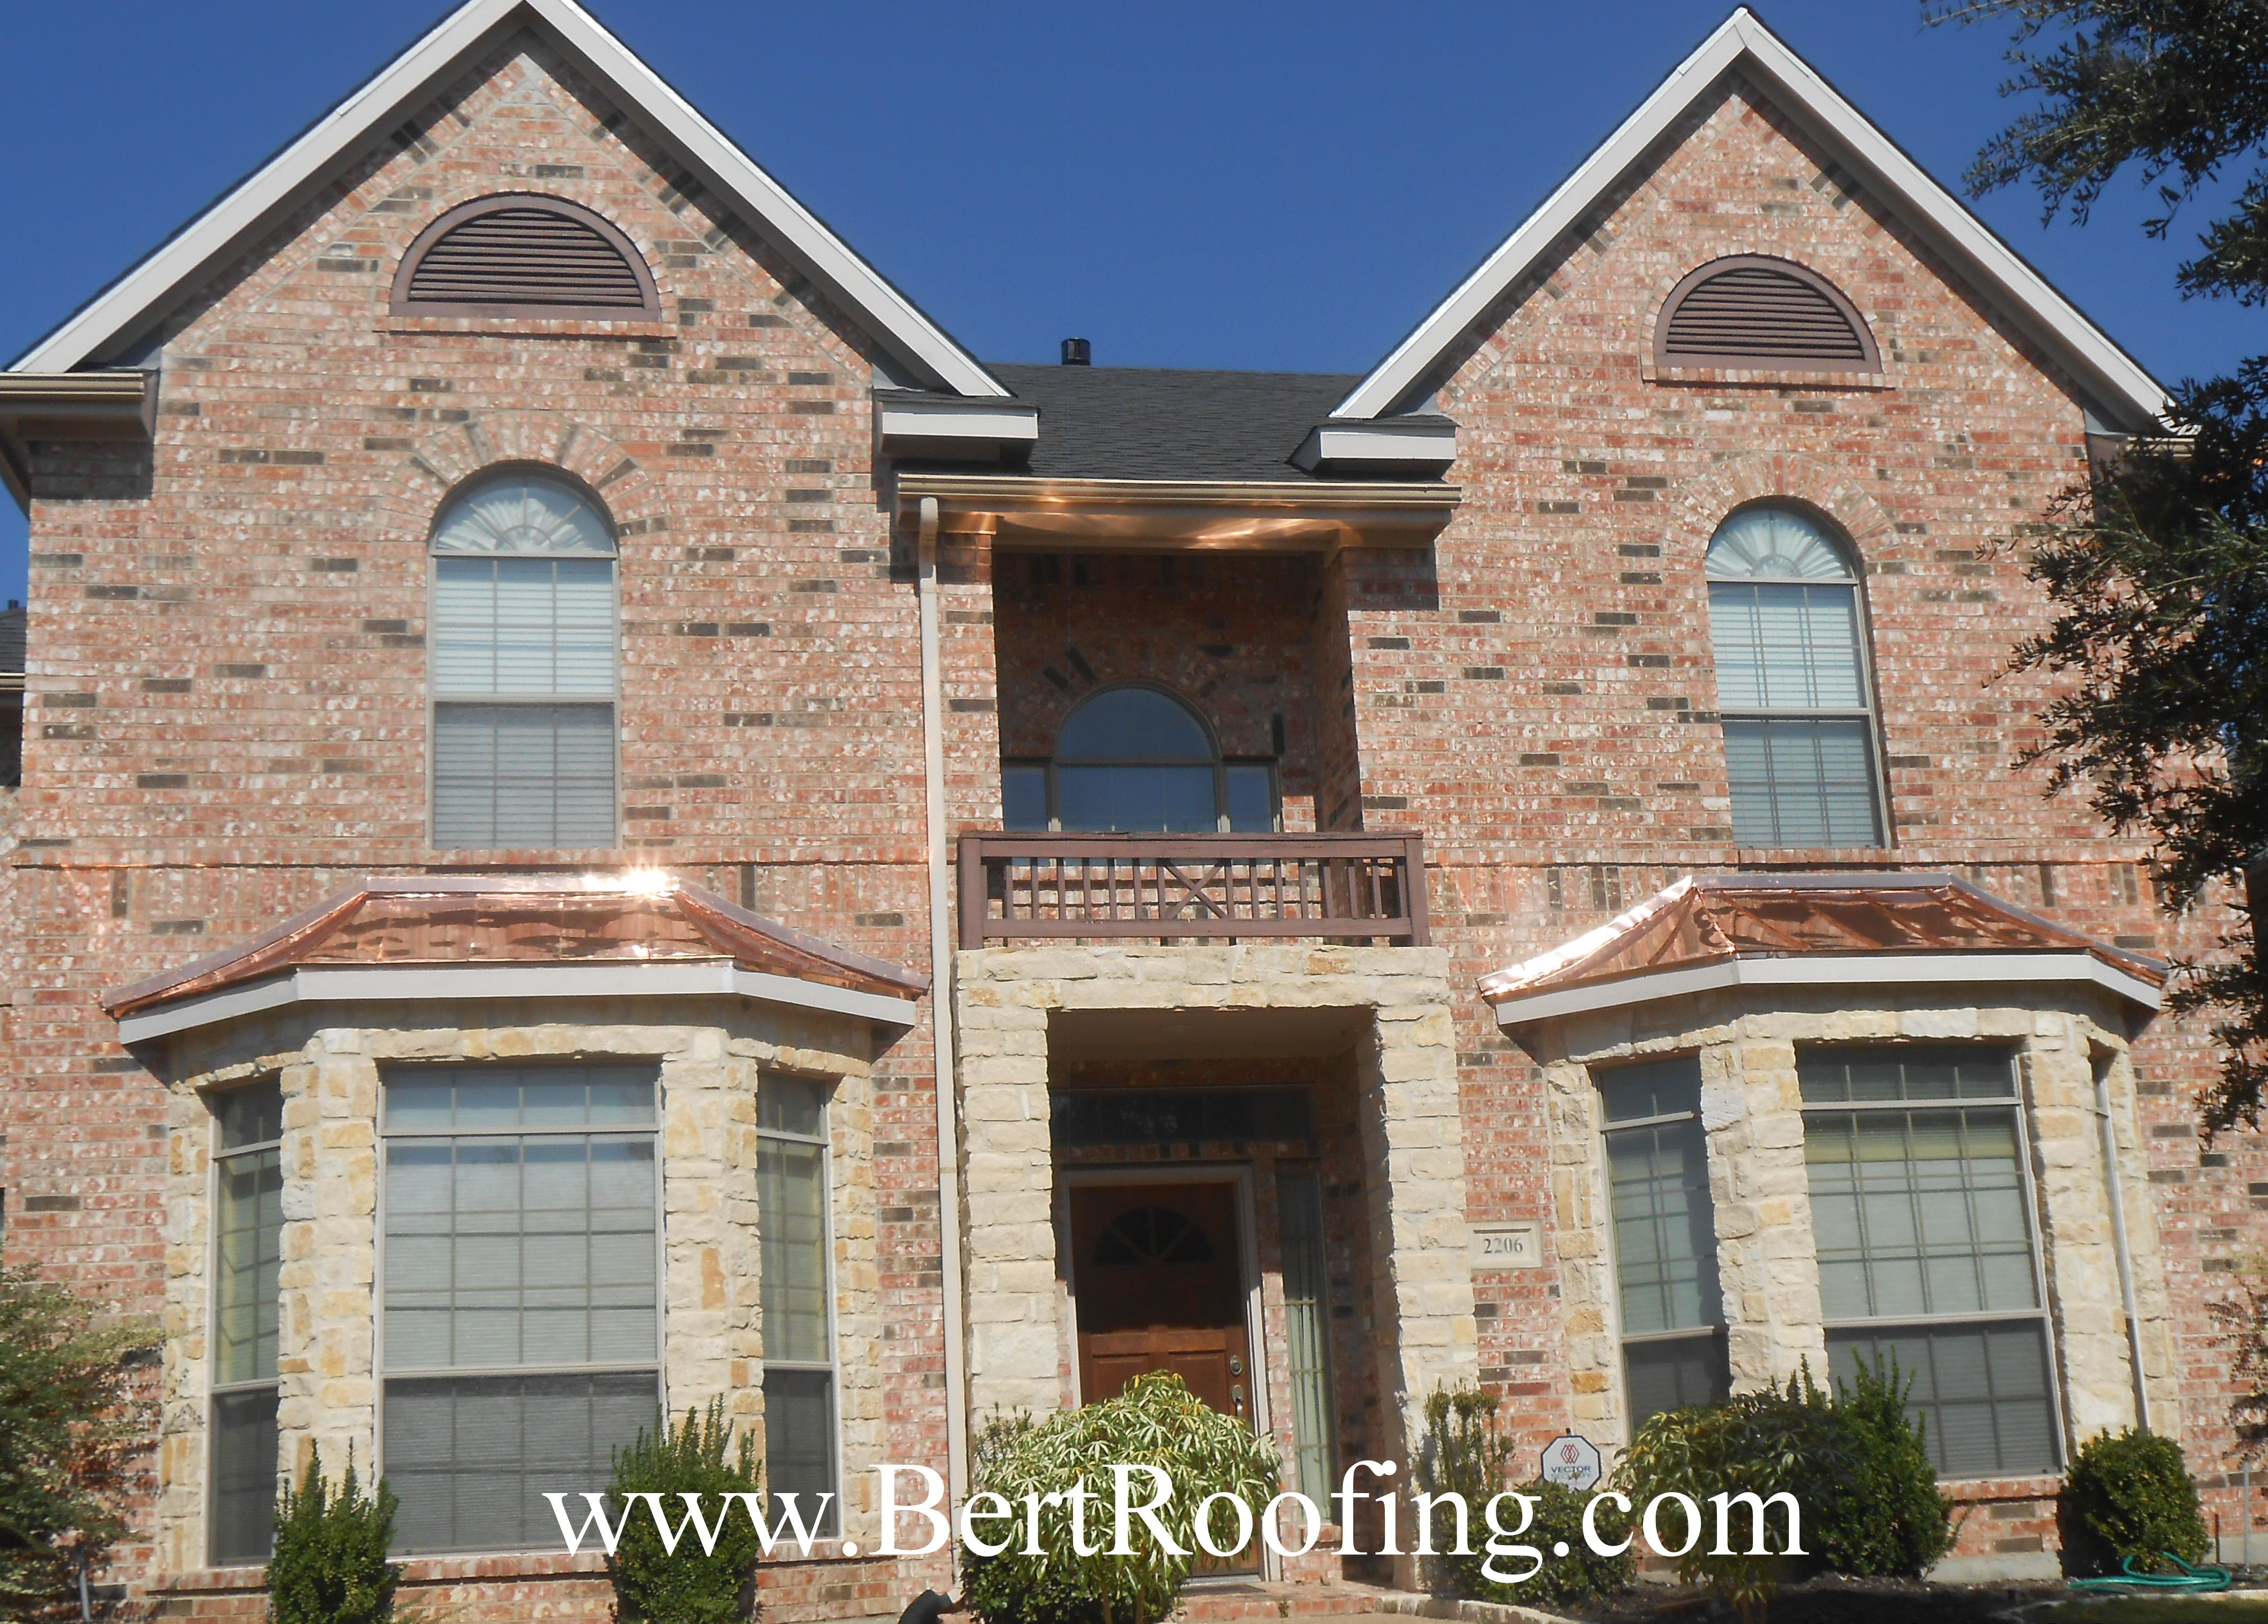 Installed By Bert Roofing Inc Of Dallas In Lewisville On October 2016. | CertainTeed  Roofing: Landmark Composition Shingle | CertainTeed Building Products ...